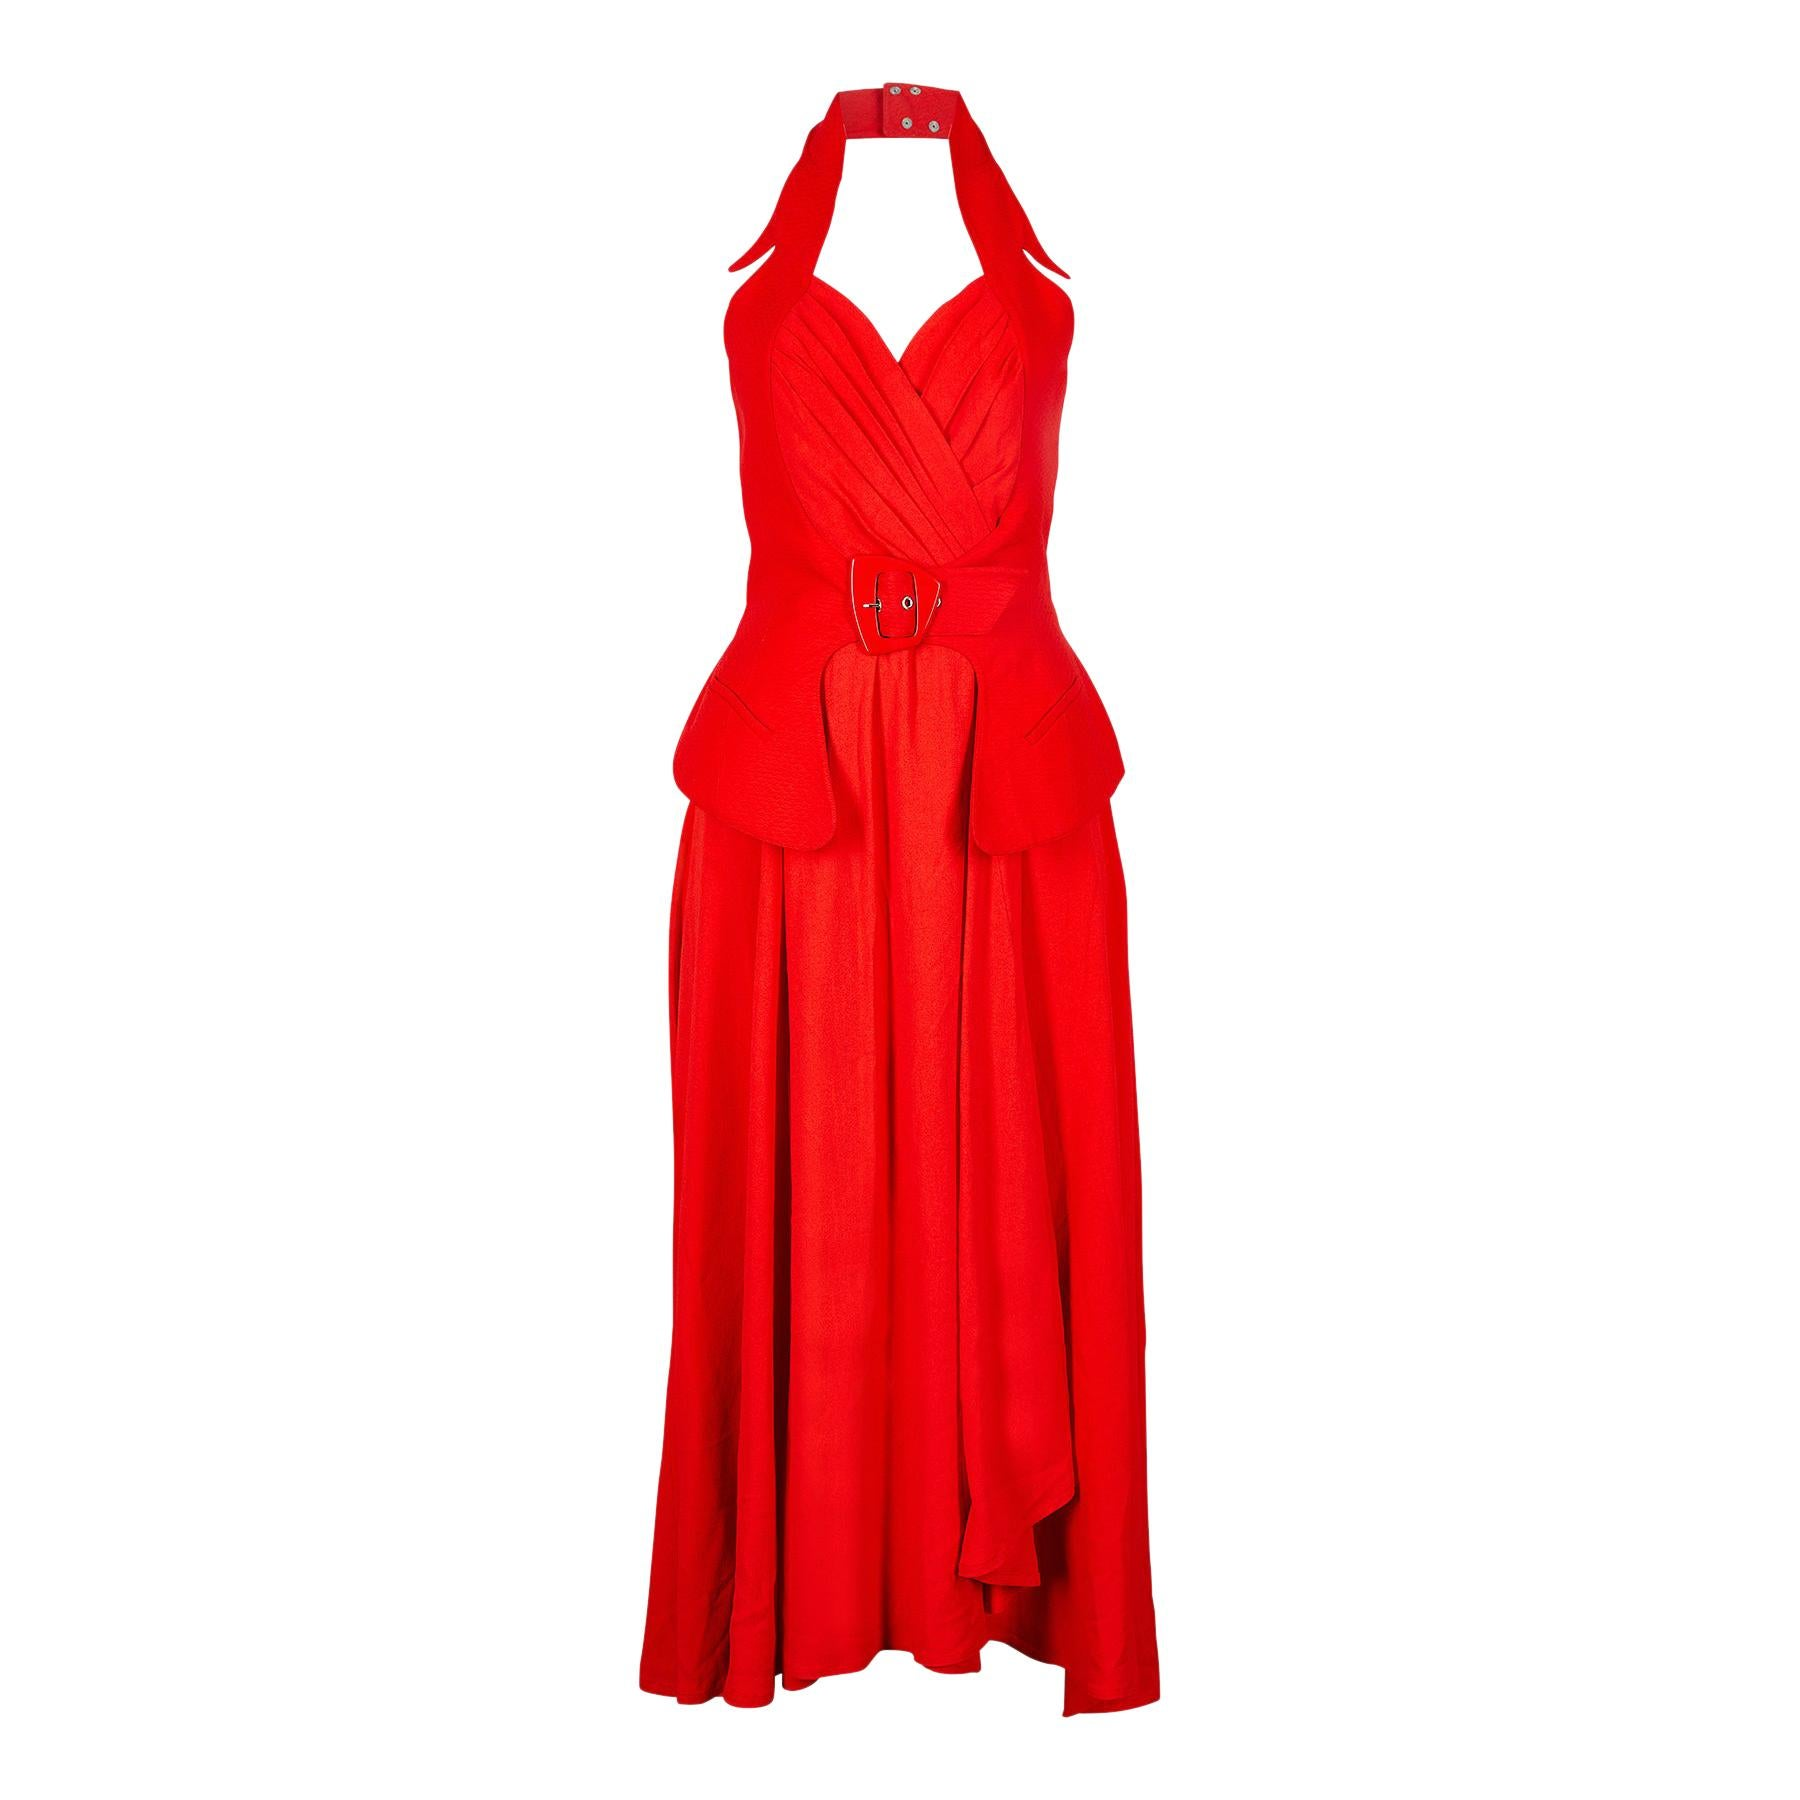 1990s Thierry Mugler Couture Halter Neck Red Dress